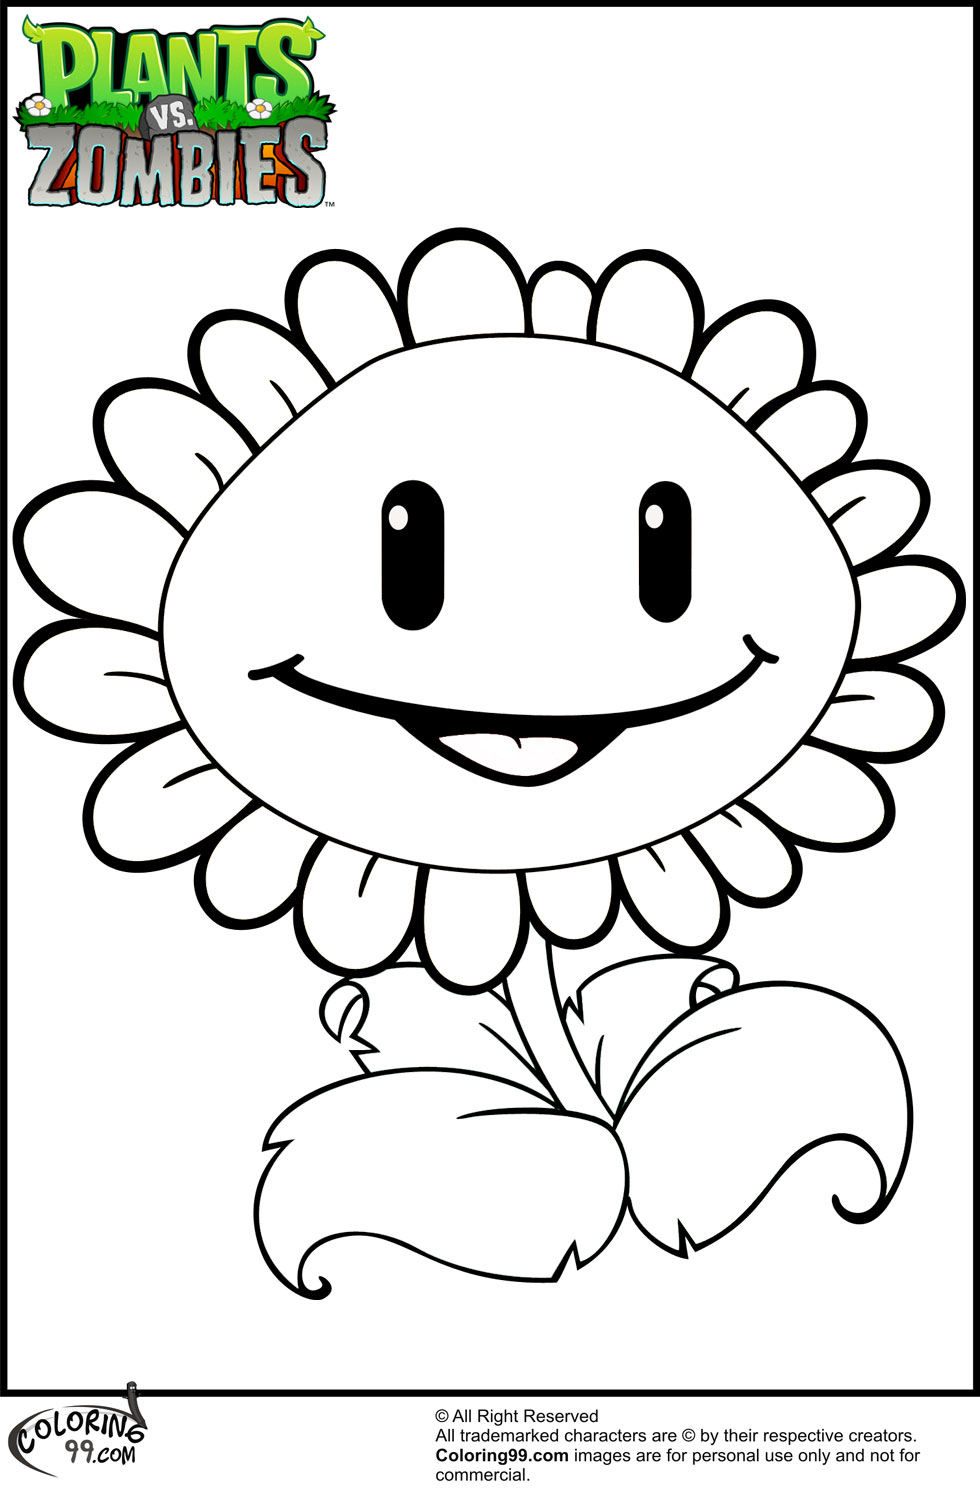 980x1500 interesting pcbgbkki from plants vs zombies coloring pages on with